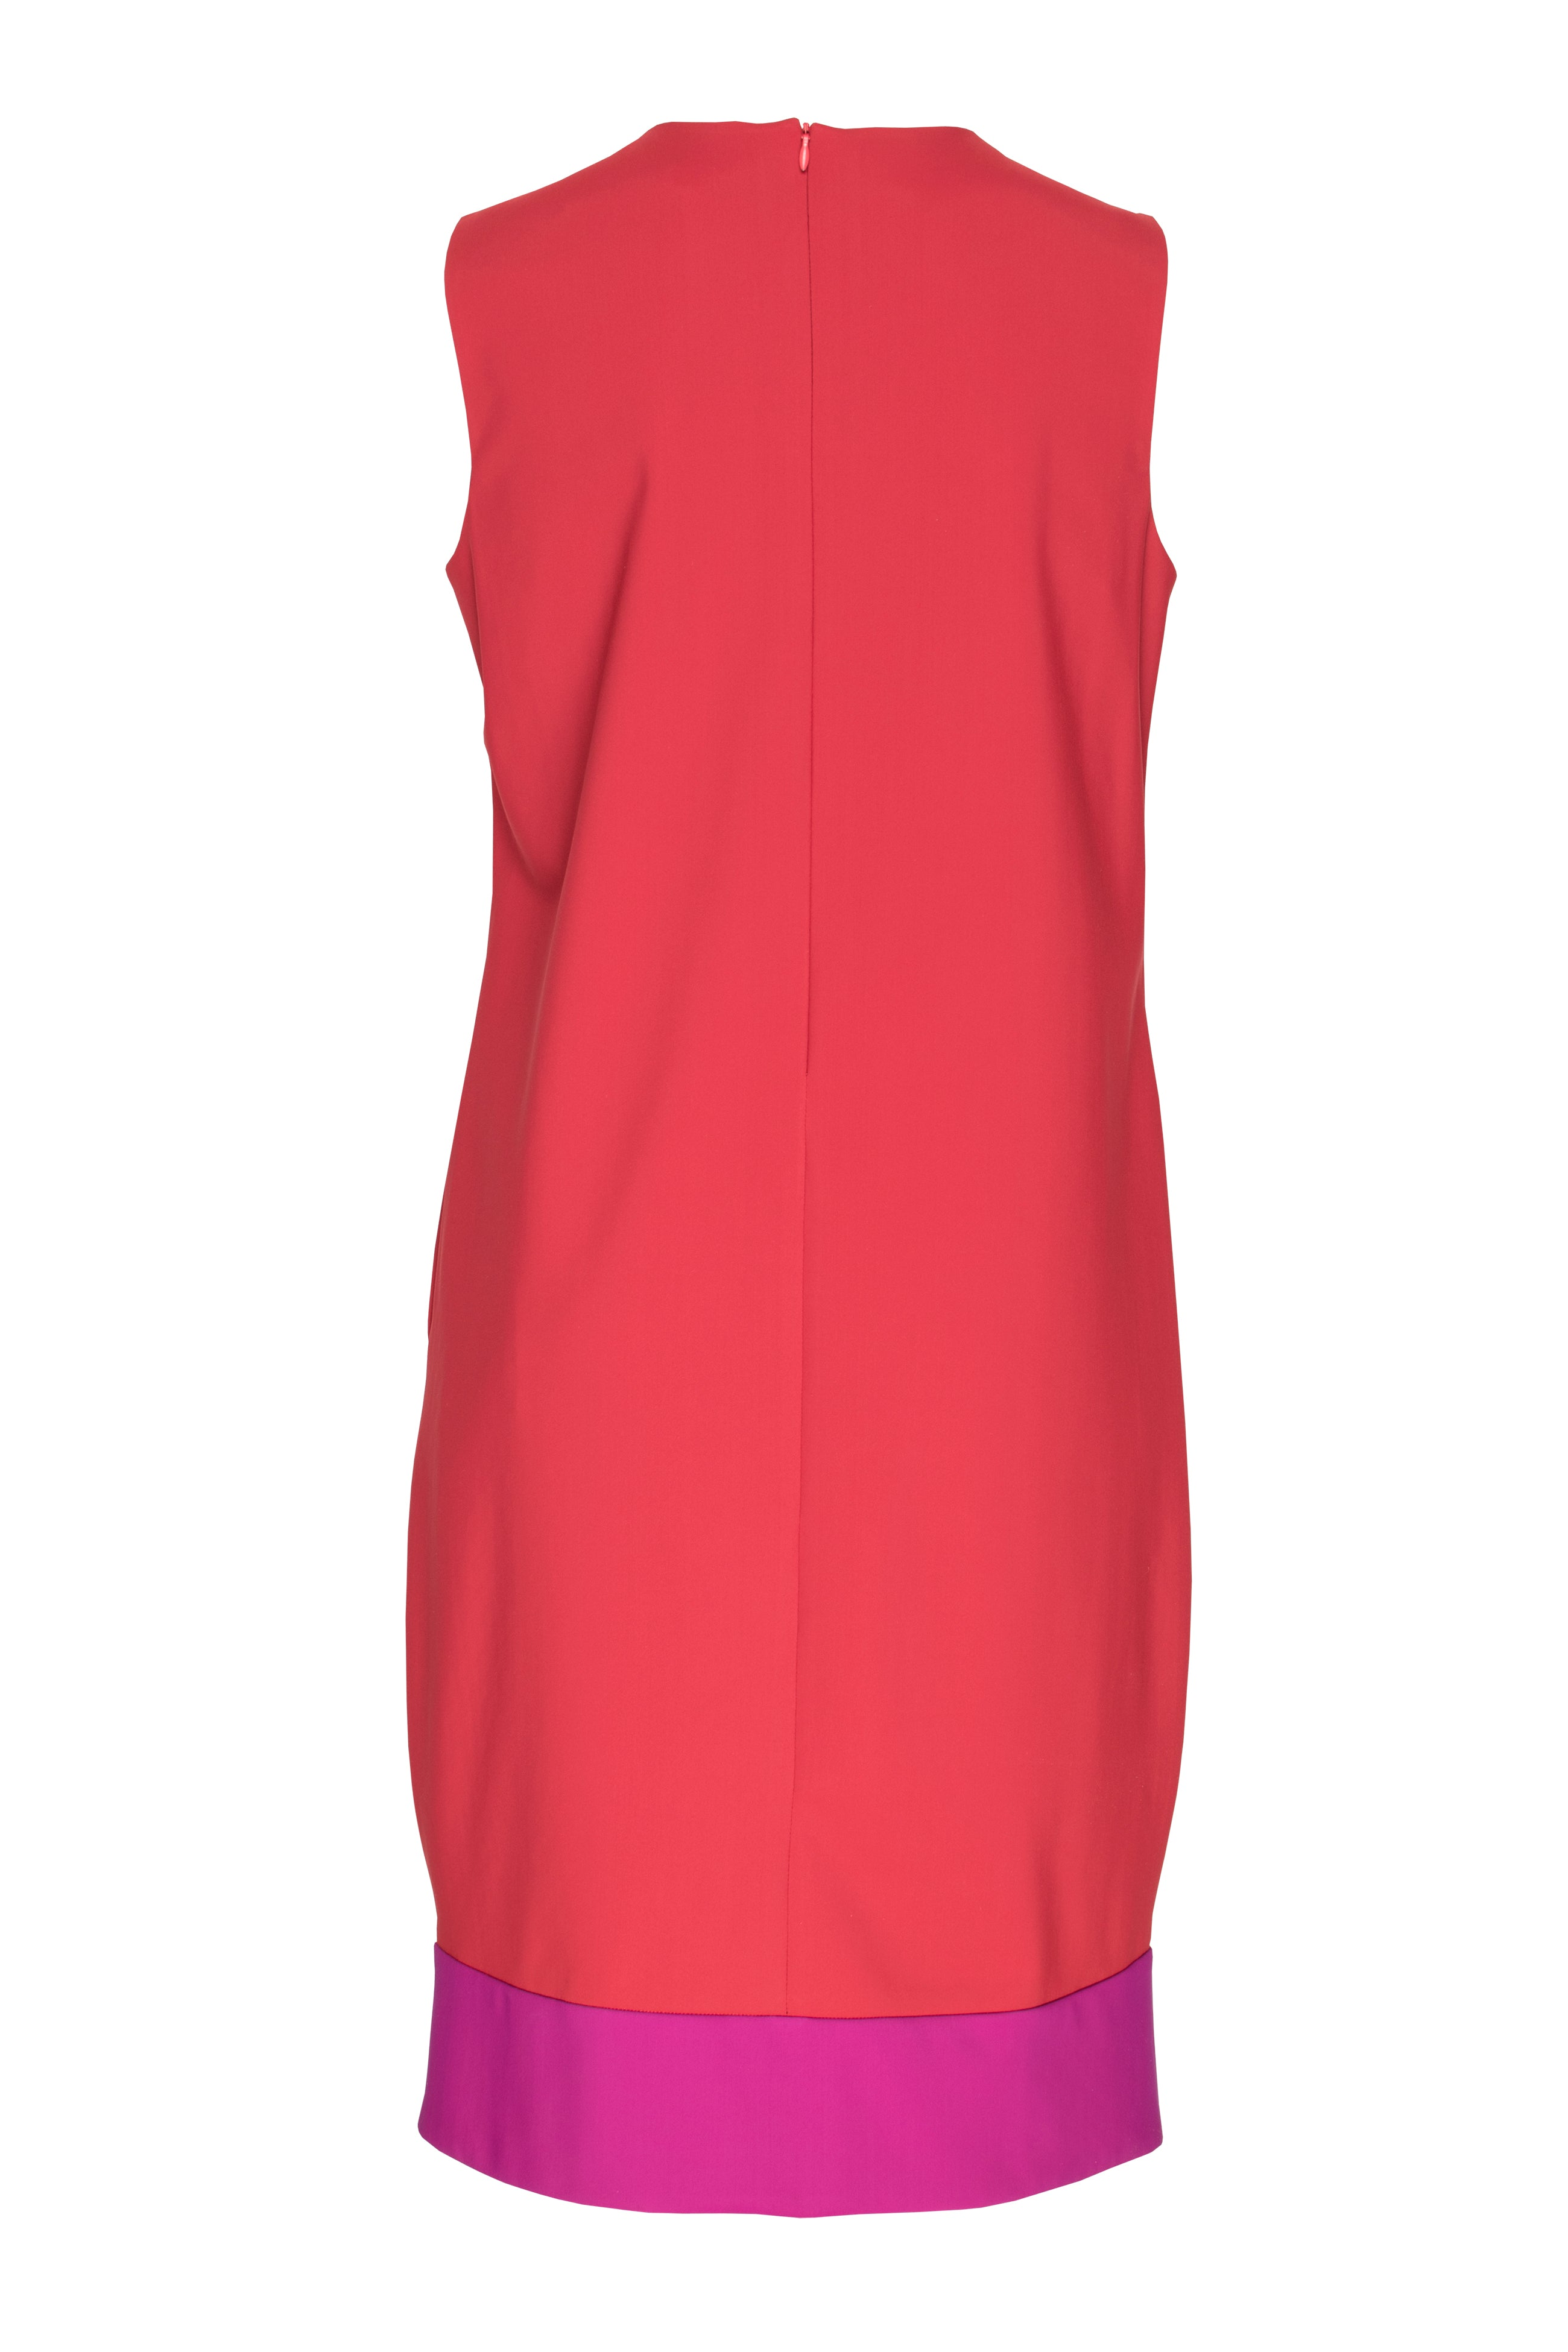 Red/Cerise Narrow Panel Hem Shift 3228